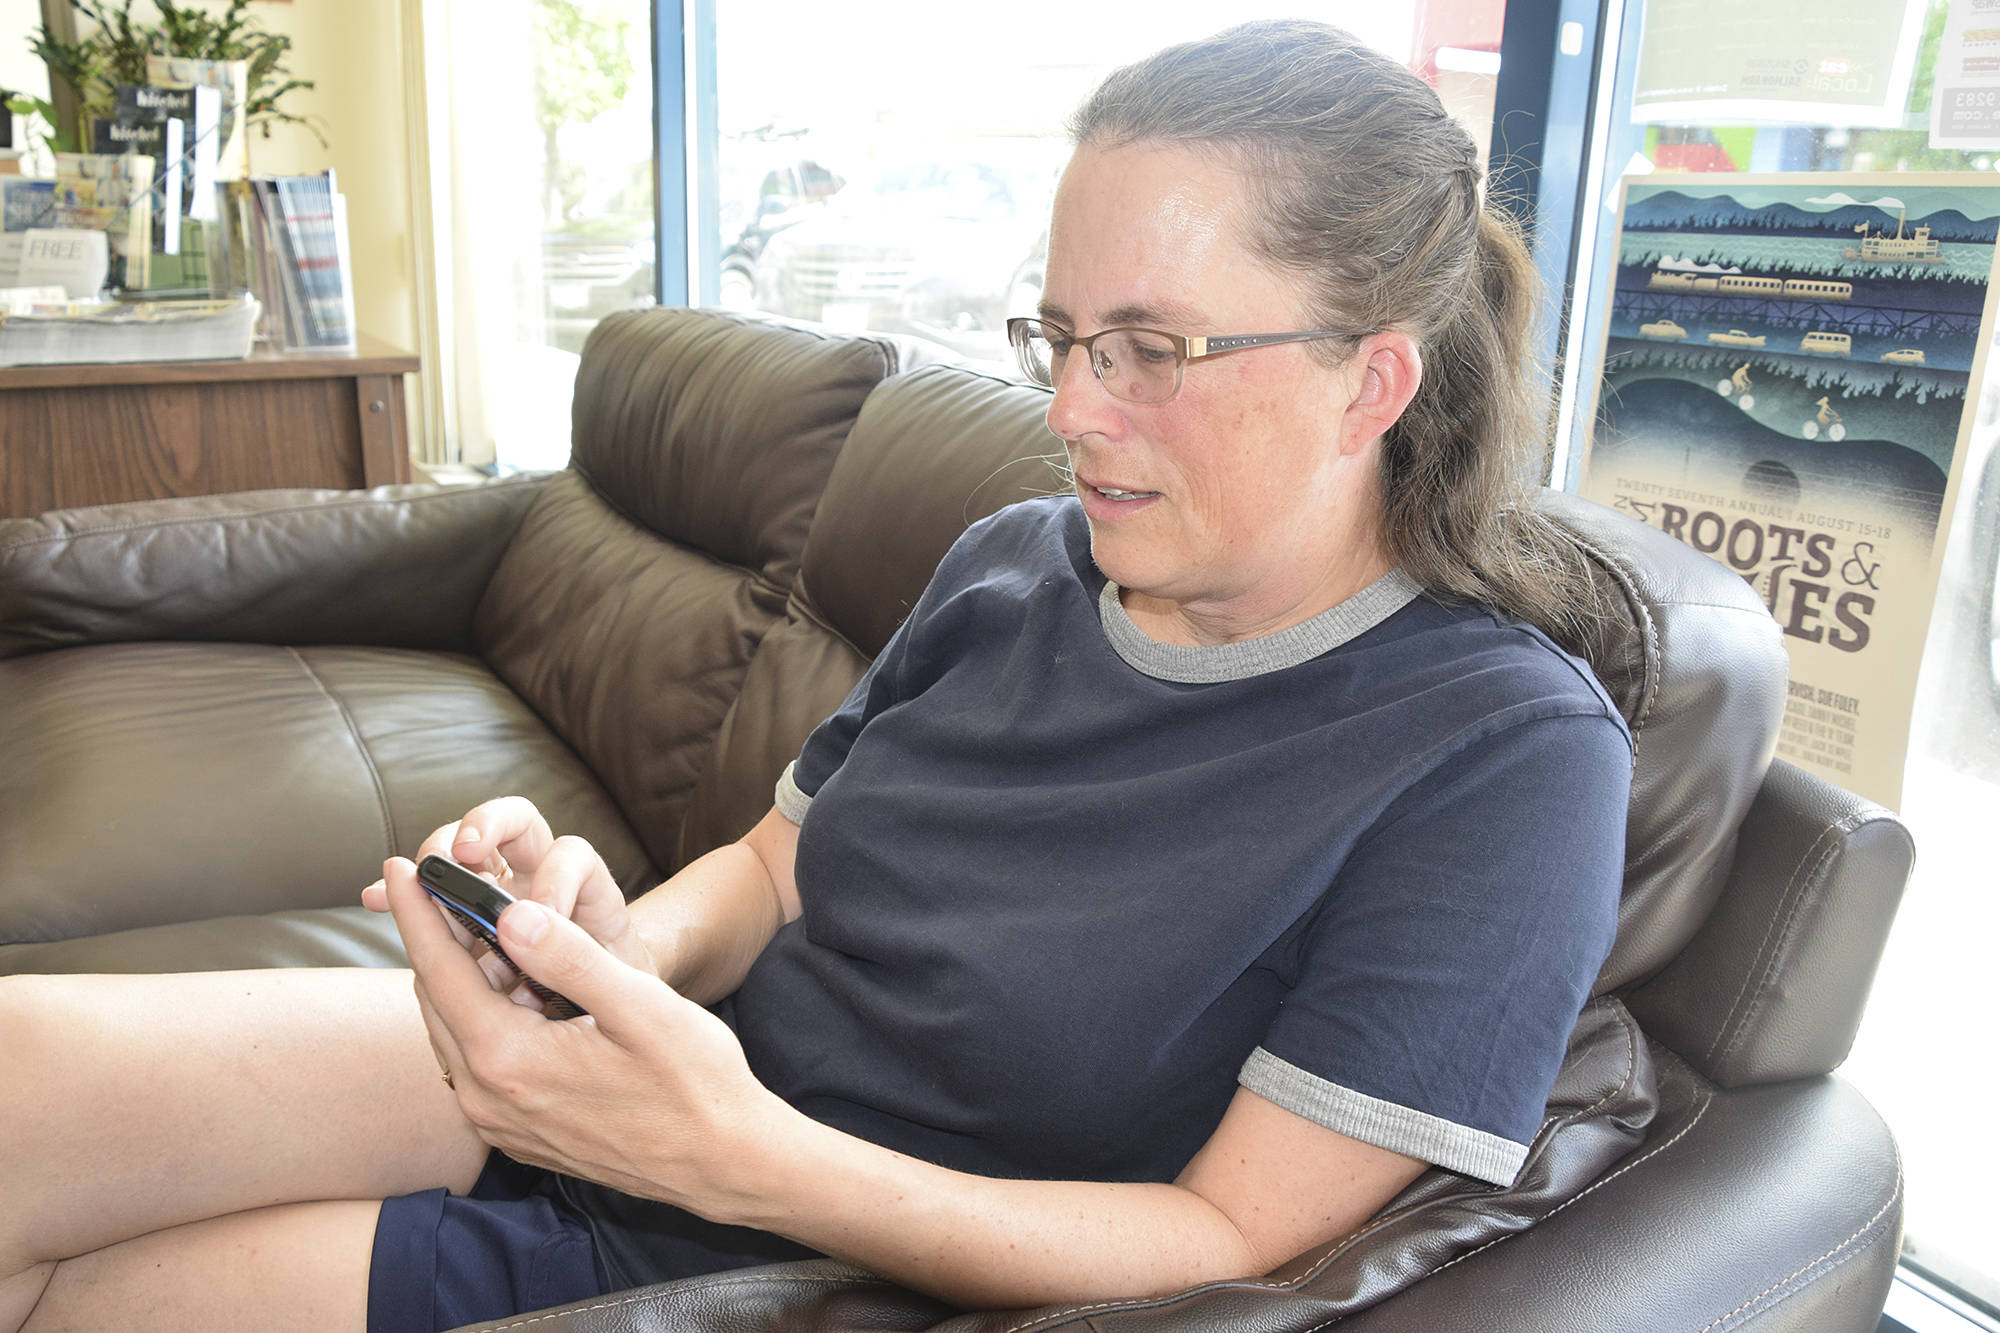 Salmon Arm's Wendy Goldman texts with her sister who lives in Ridgecrest, California, 17 kilometres from the epicentre of a 7.1 magnitude earthquake, where her neighbourhood was rocked by reportedly the largest quake the state has experienced in 20 years. (Martha Wickett/Salmon Arm Observer)